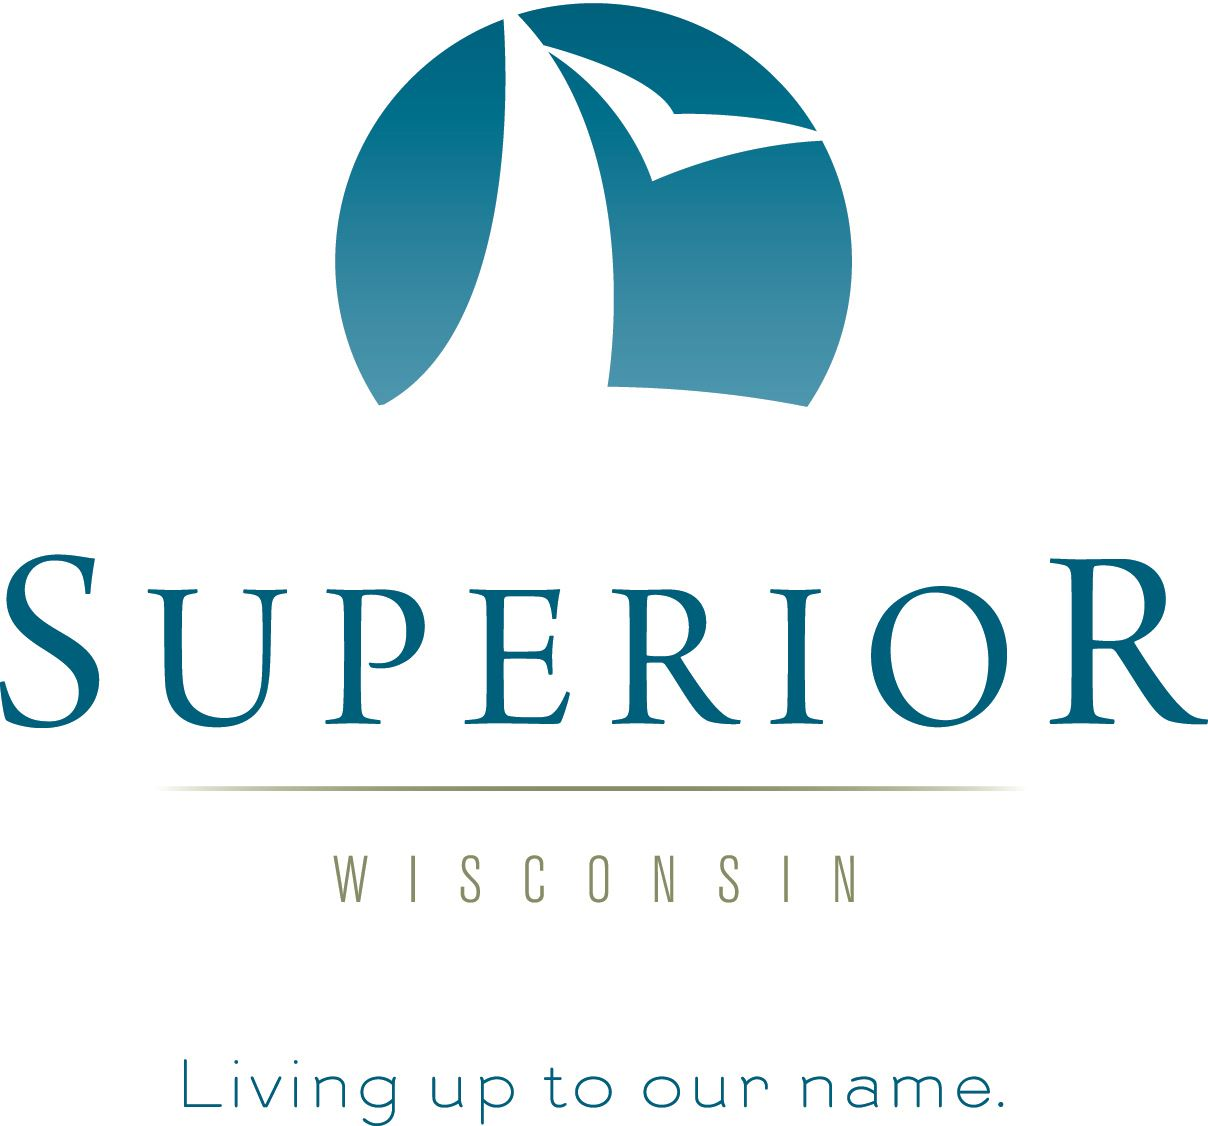 City of Superior New logo 6-2008.08